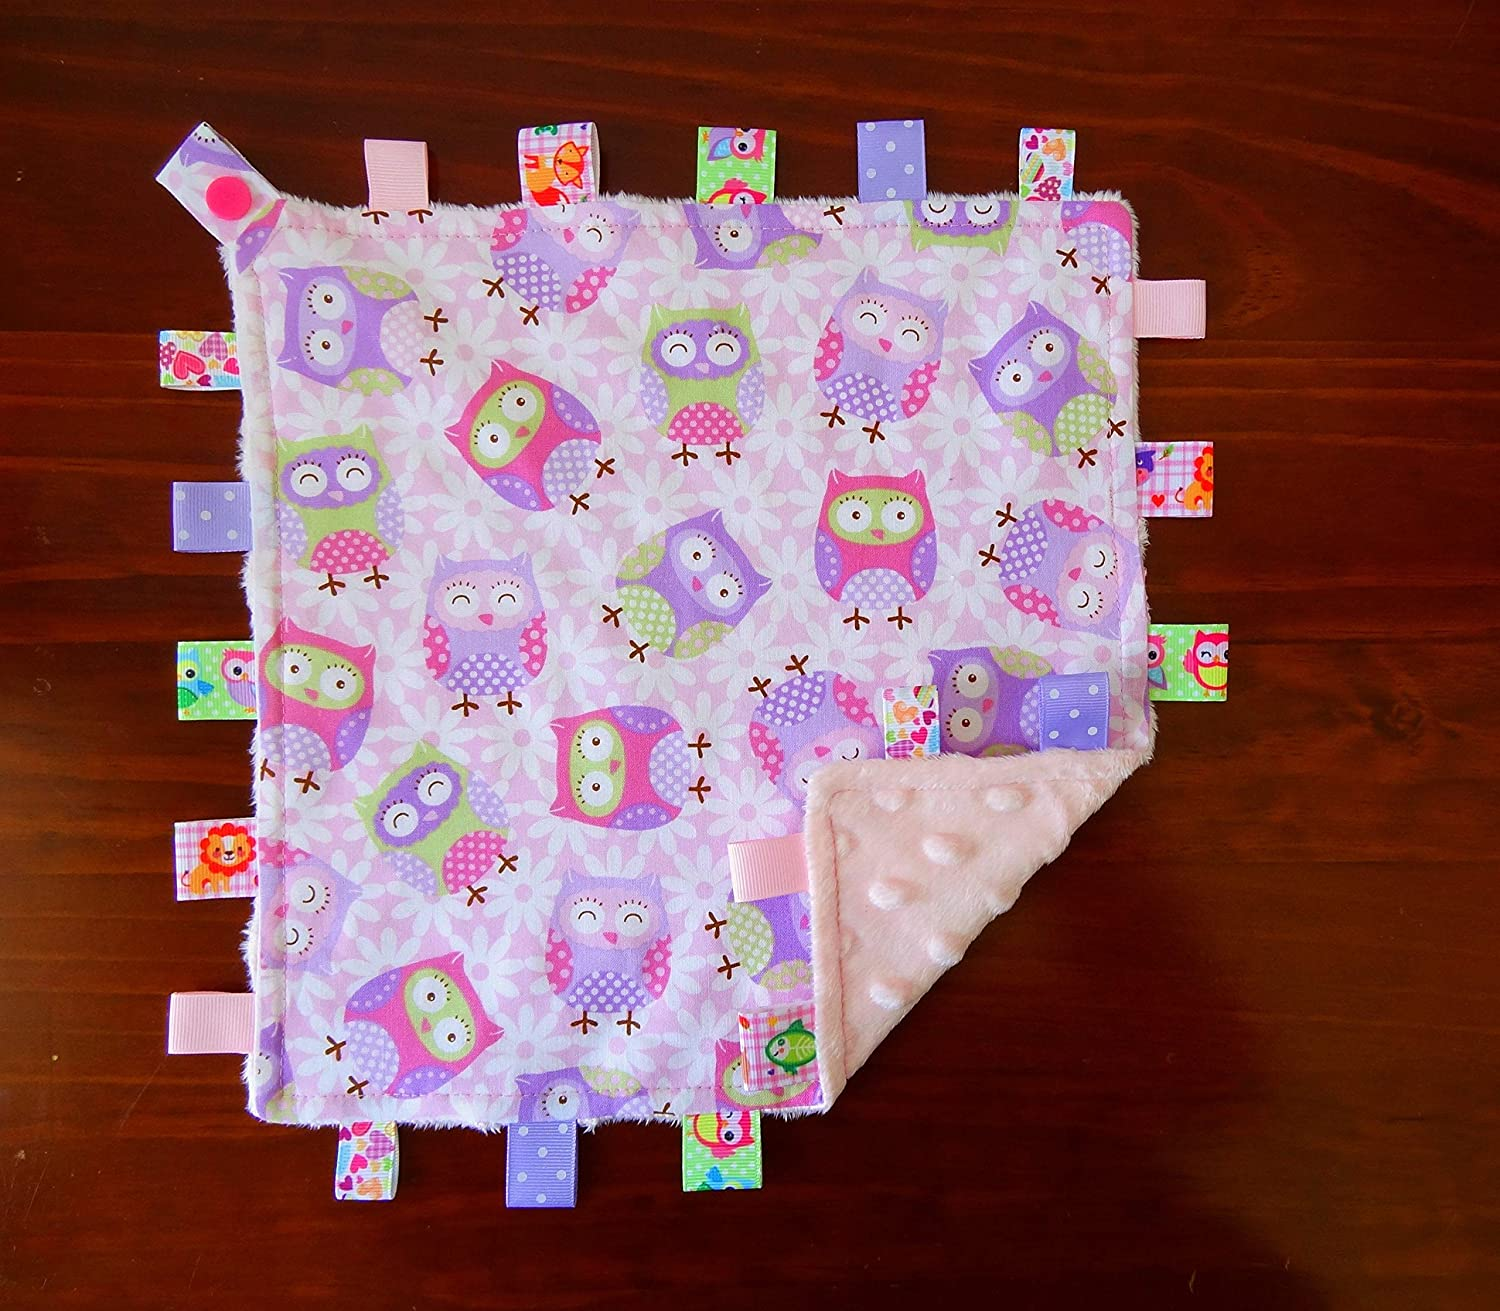 Taggie Taggy Tag Security Blanket Toy Comforter dummy clip holder Elephant Feathers Kimmidoll Minnie Mouse Owls Paw Patrol Sheep Unicorn